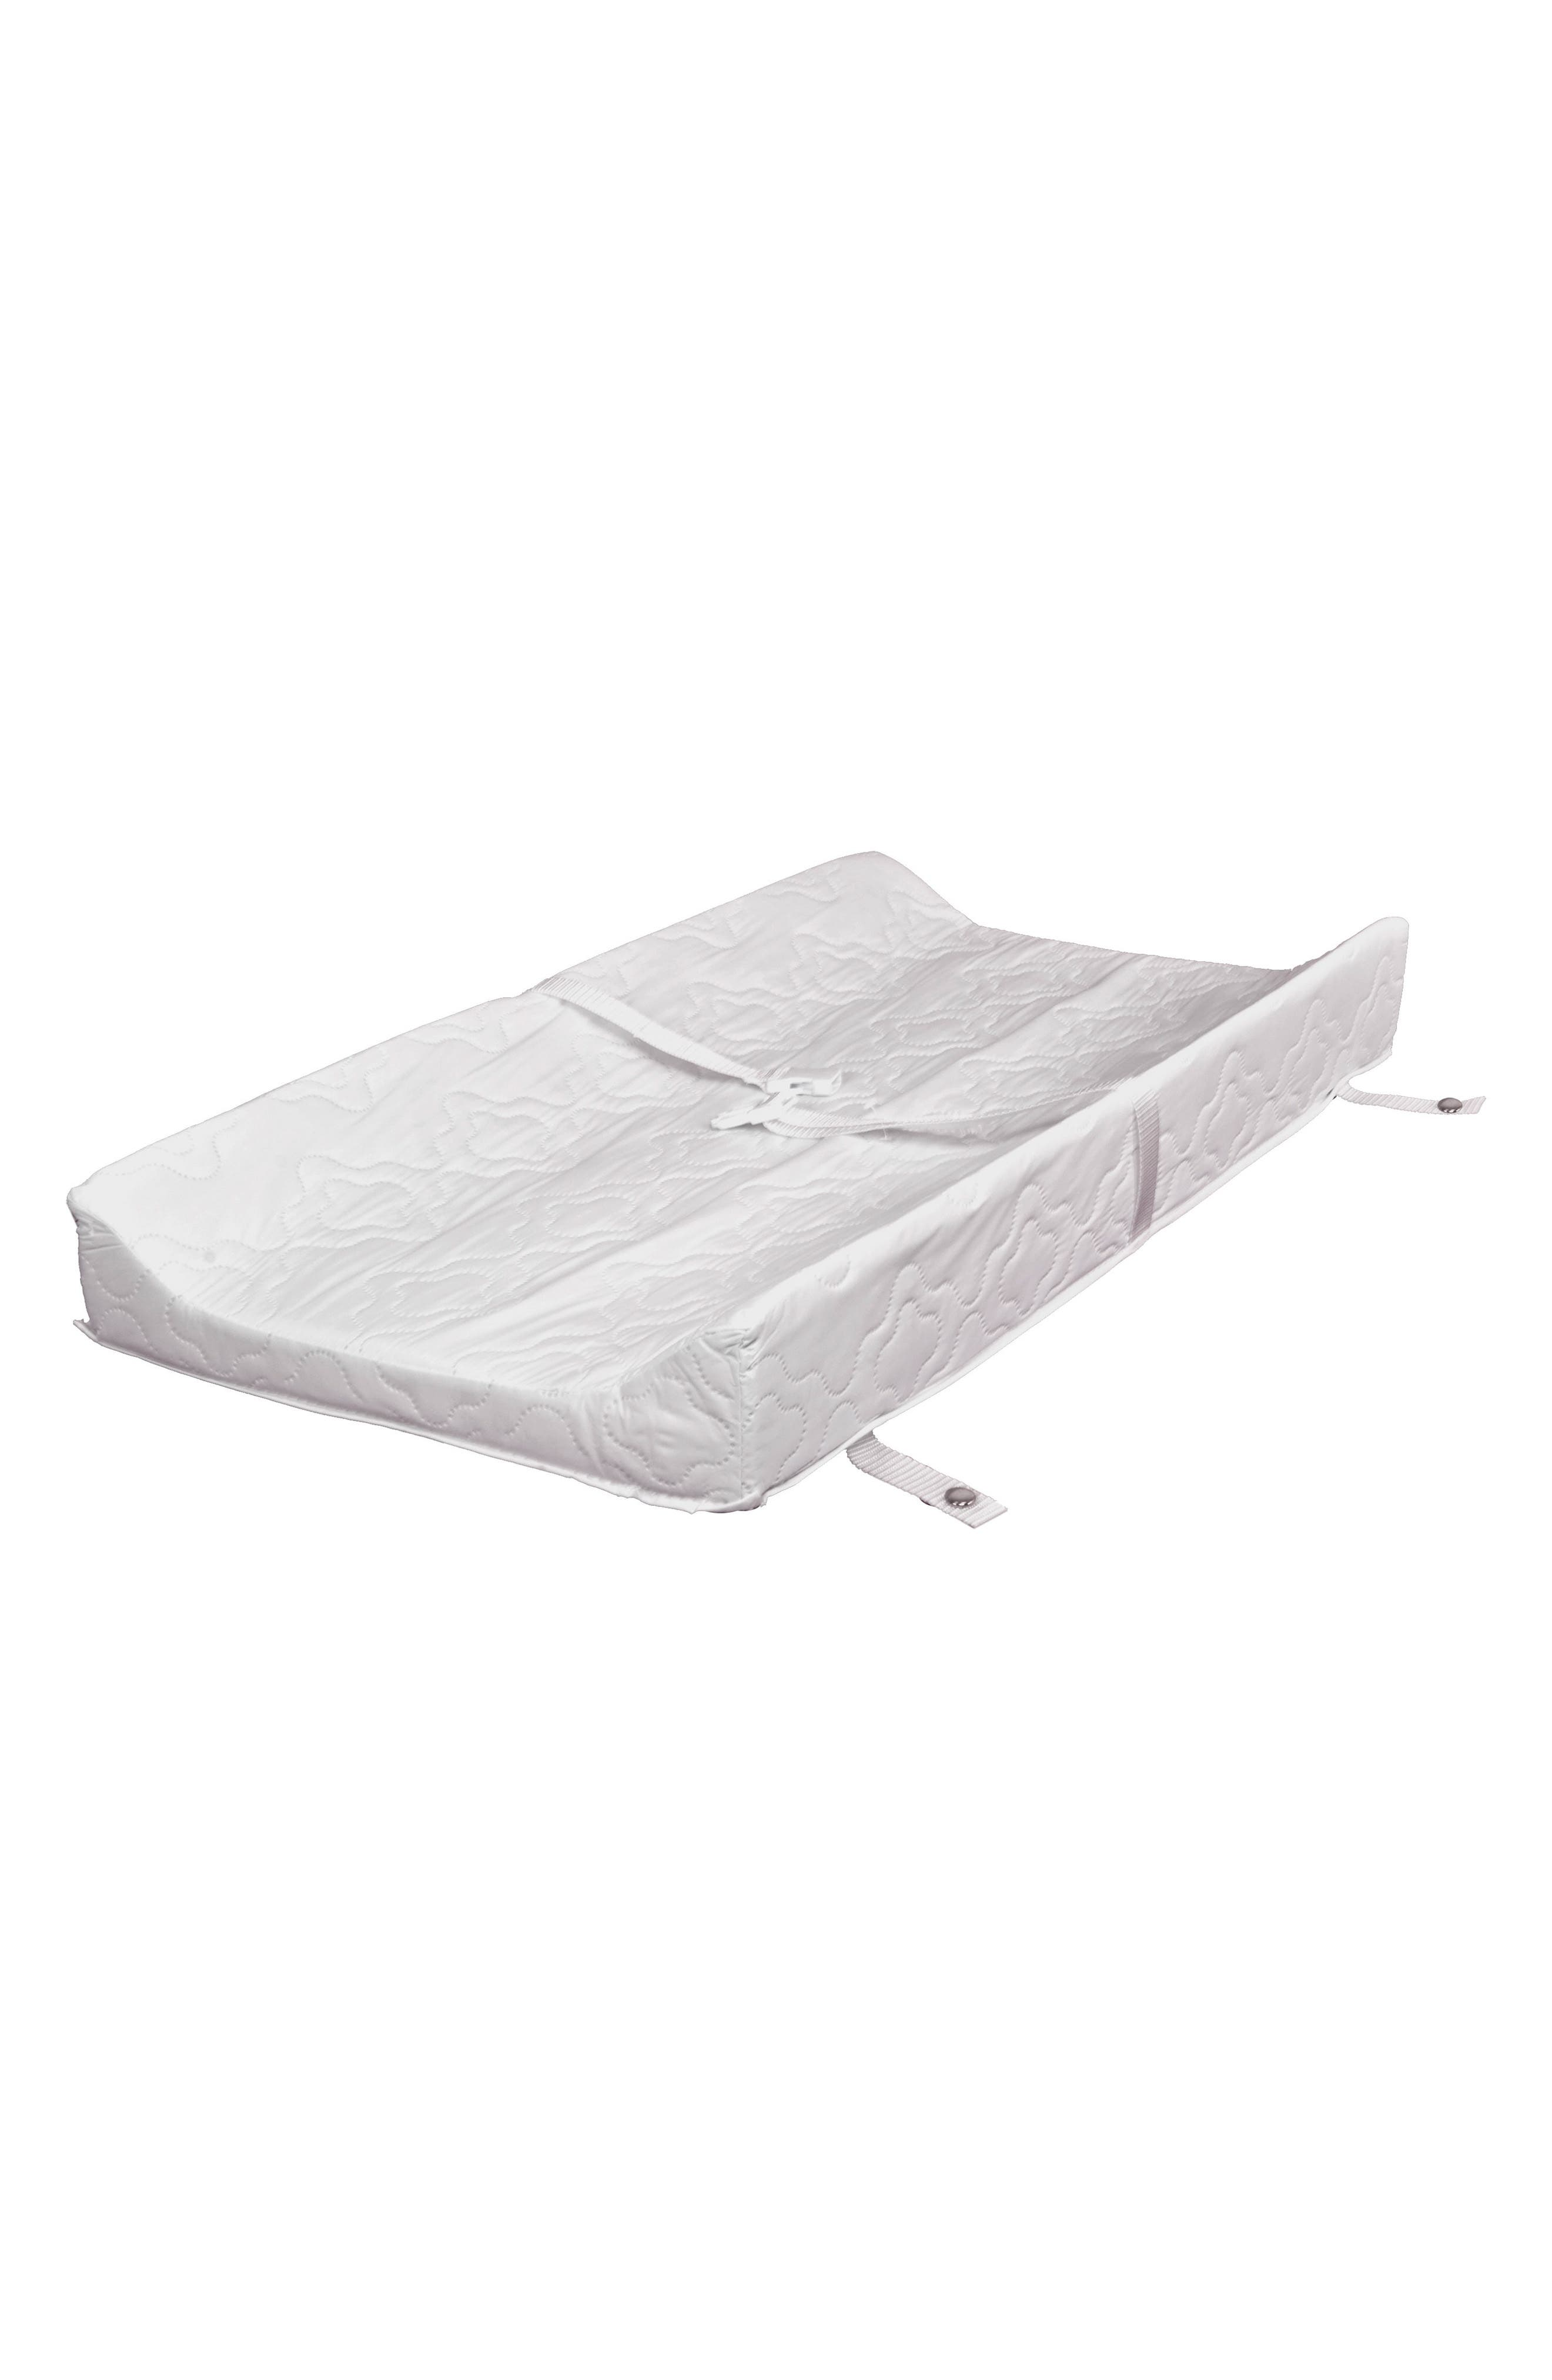 Waterproof Contoured Changing Pad for babyletto Changers/Dressers,                         Main,                         color, White